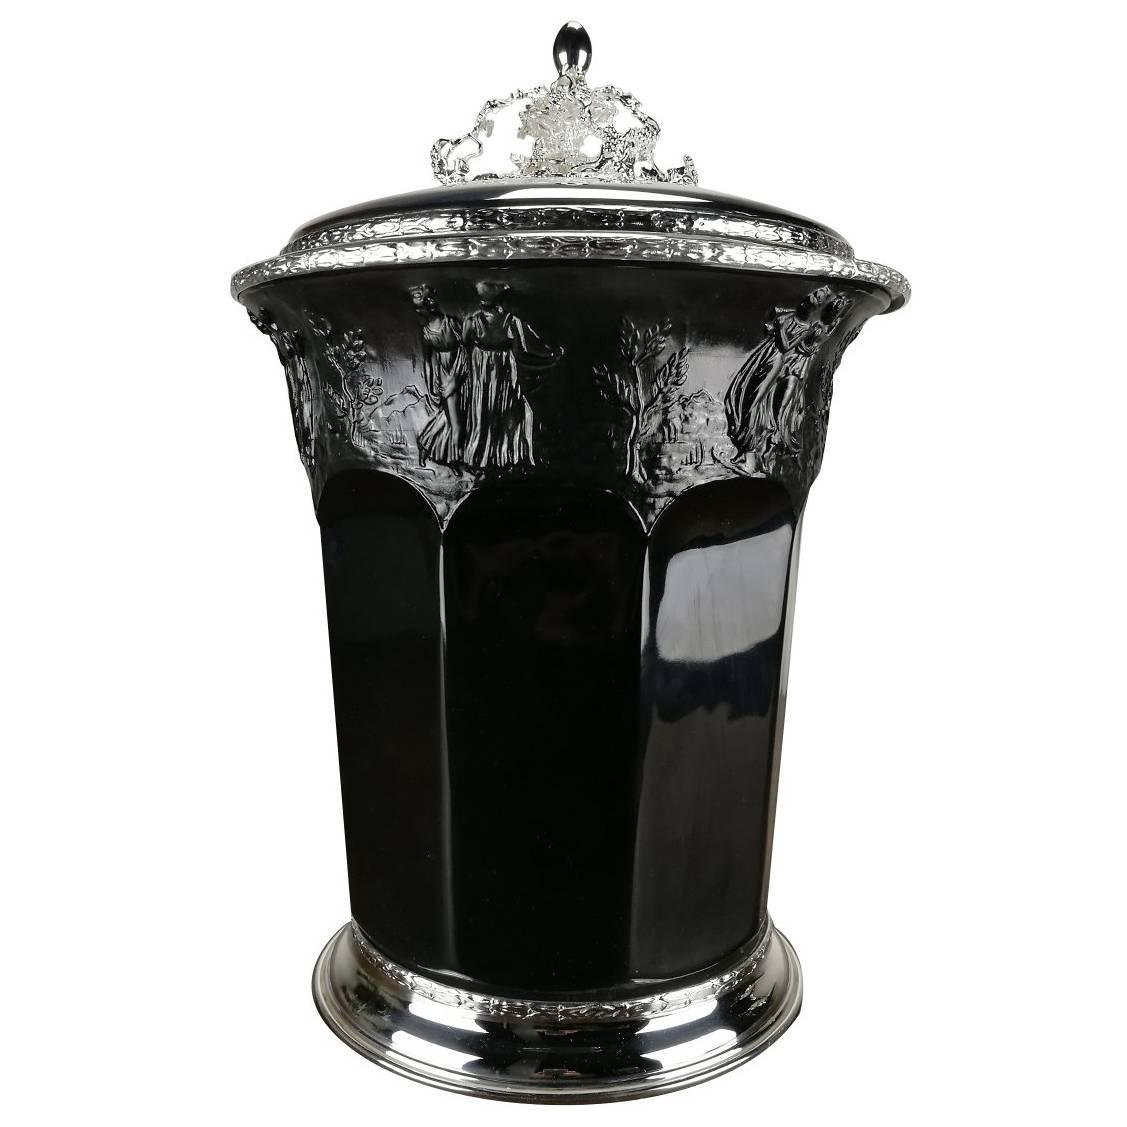 Ice Bucket with Lid in Black Porcelain